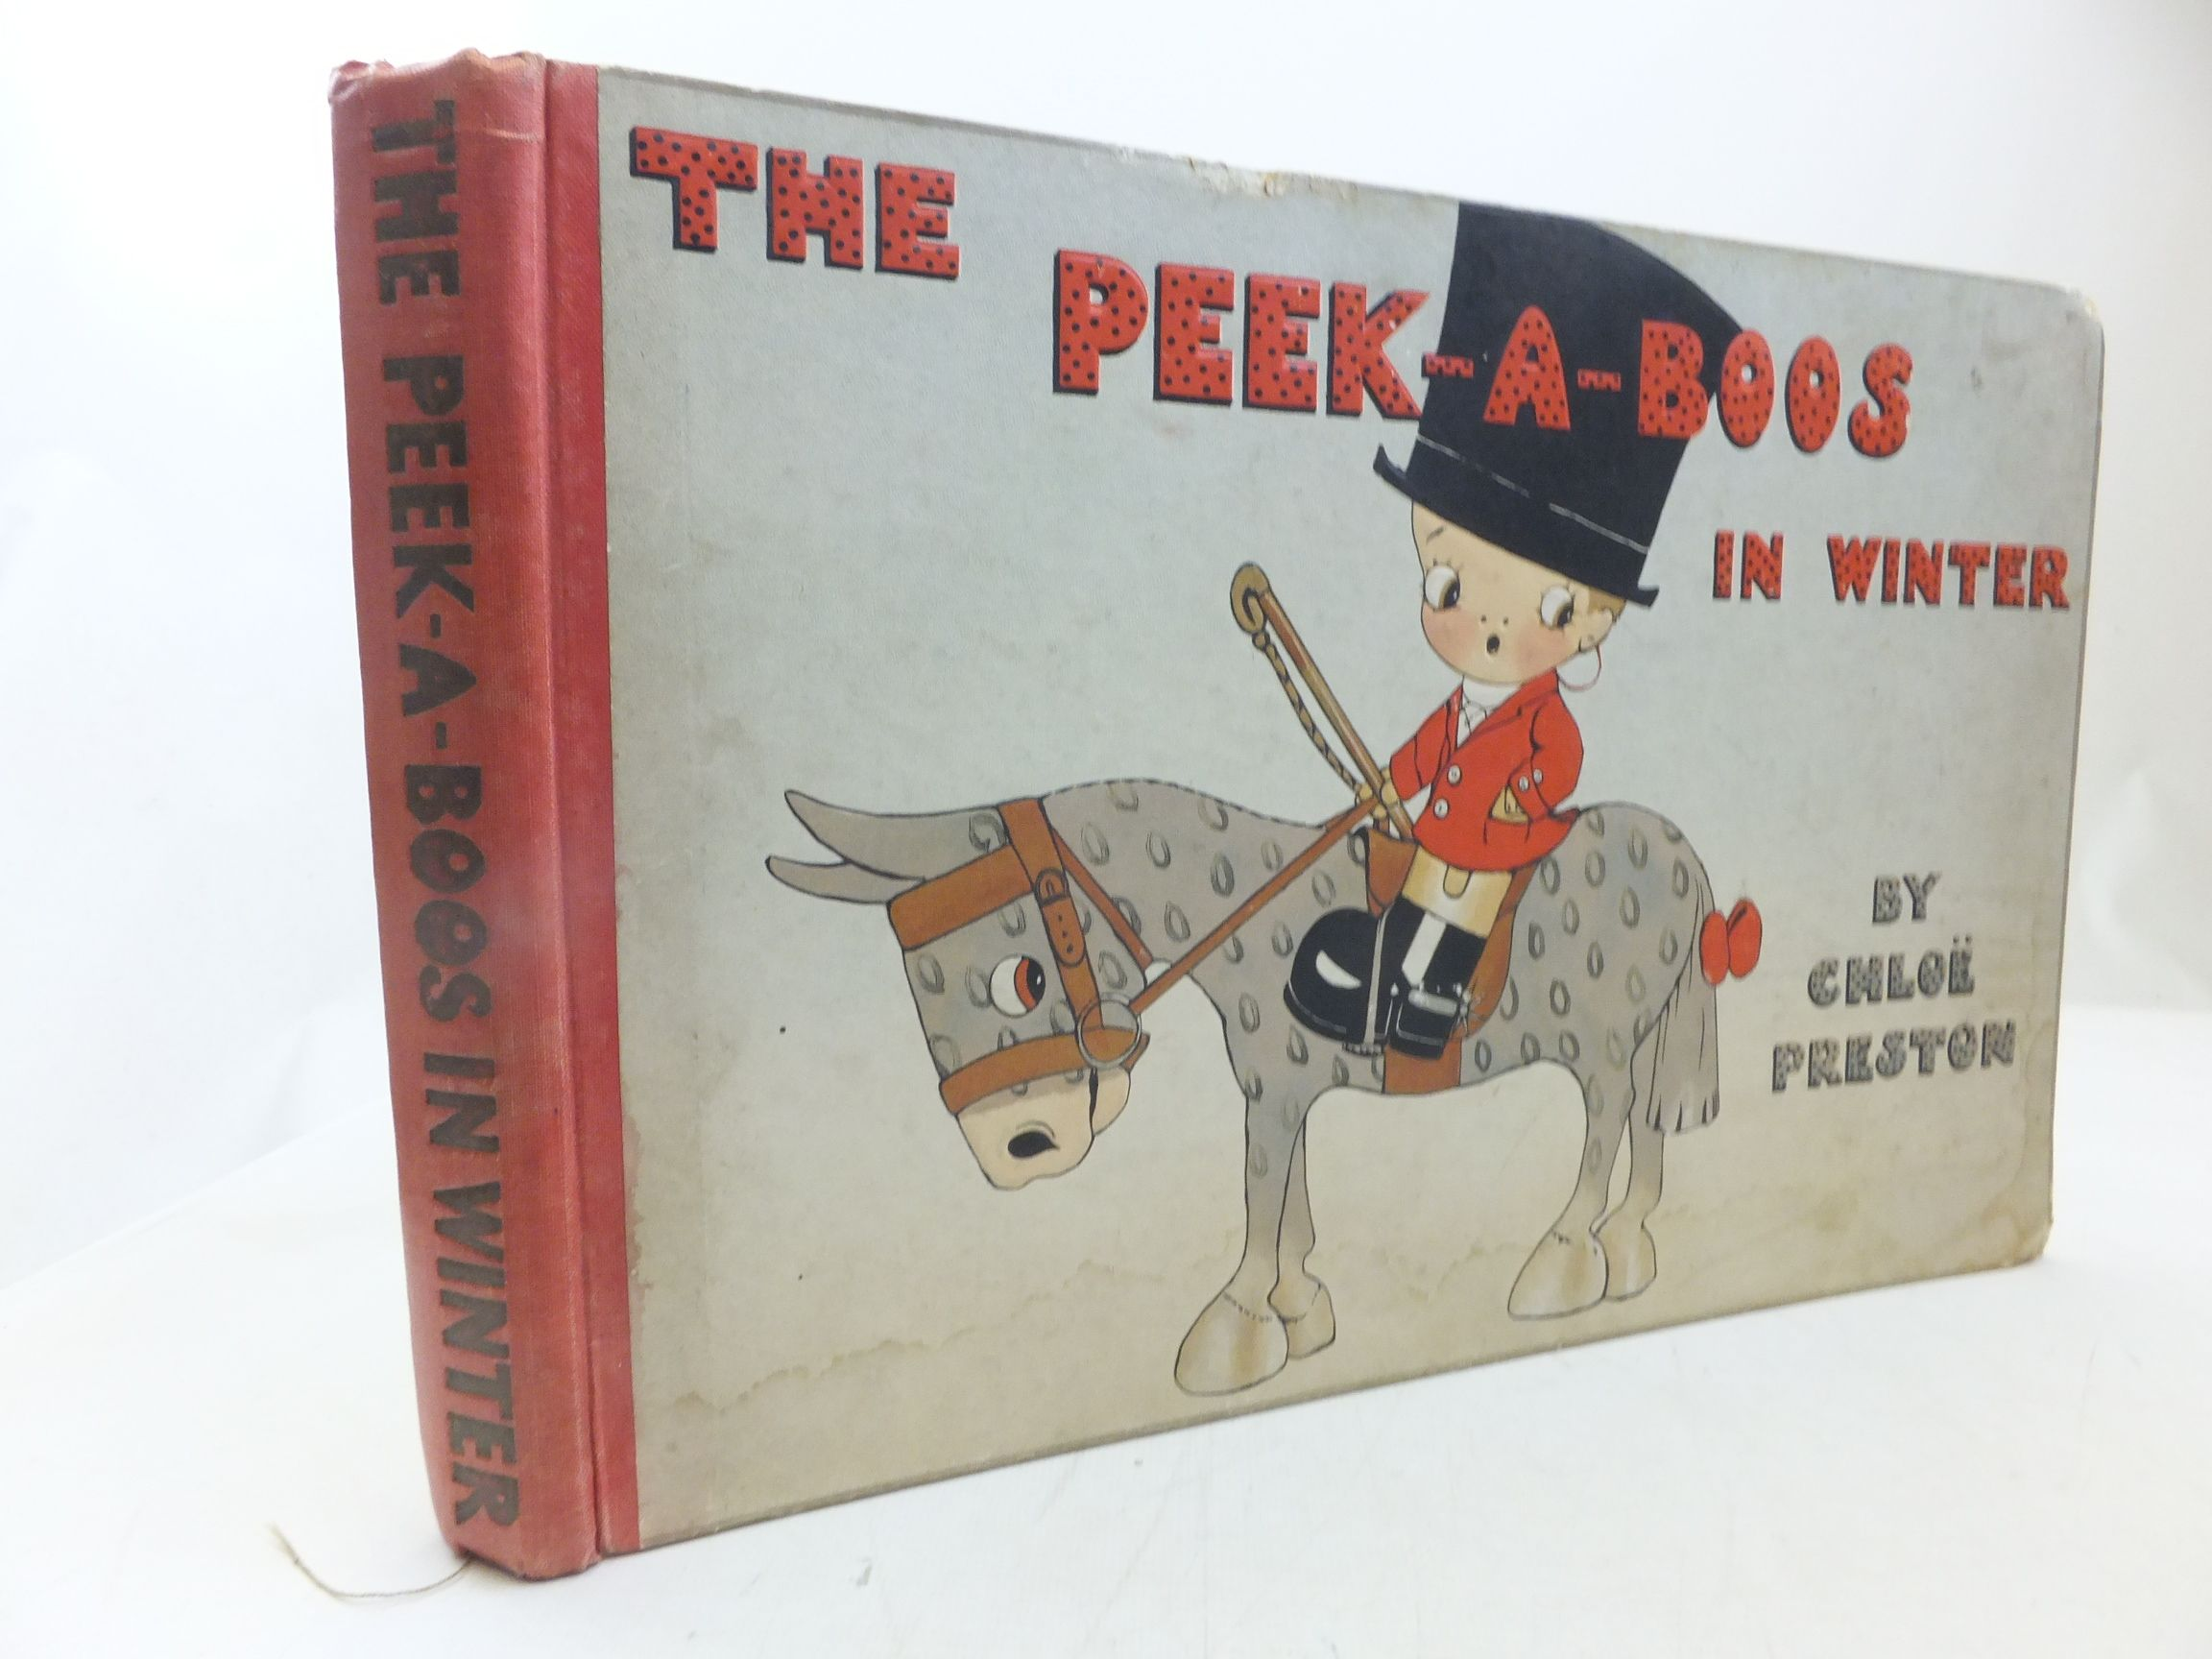 Photo of THE PEEK-A-BOOS IN WINTER written by Preston, Chloe illustrated by Preston, Chloe published by Humphrey Milford, Oxford University Press (STOCK CODE: 2118454)  for sale by Stella & Rose's Books